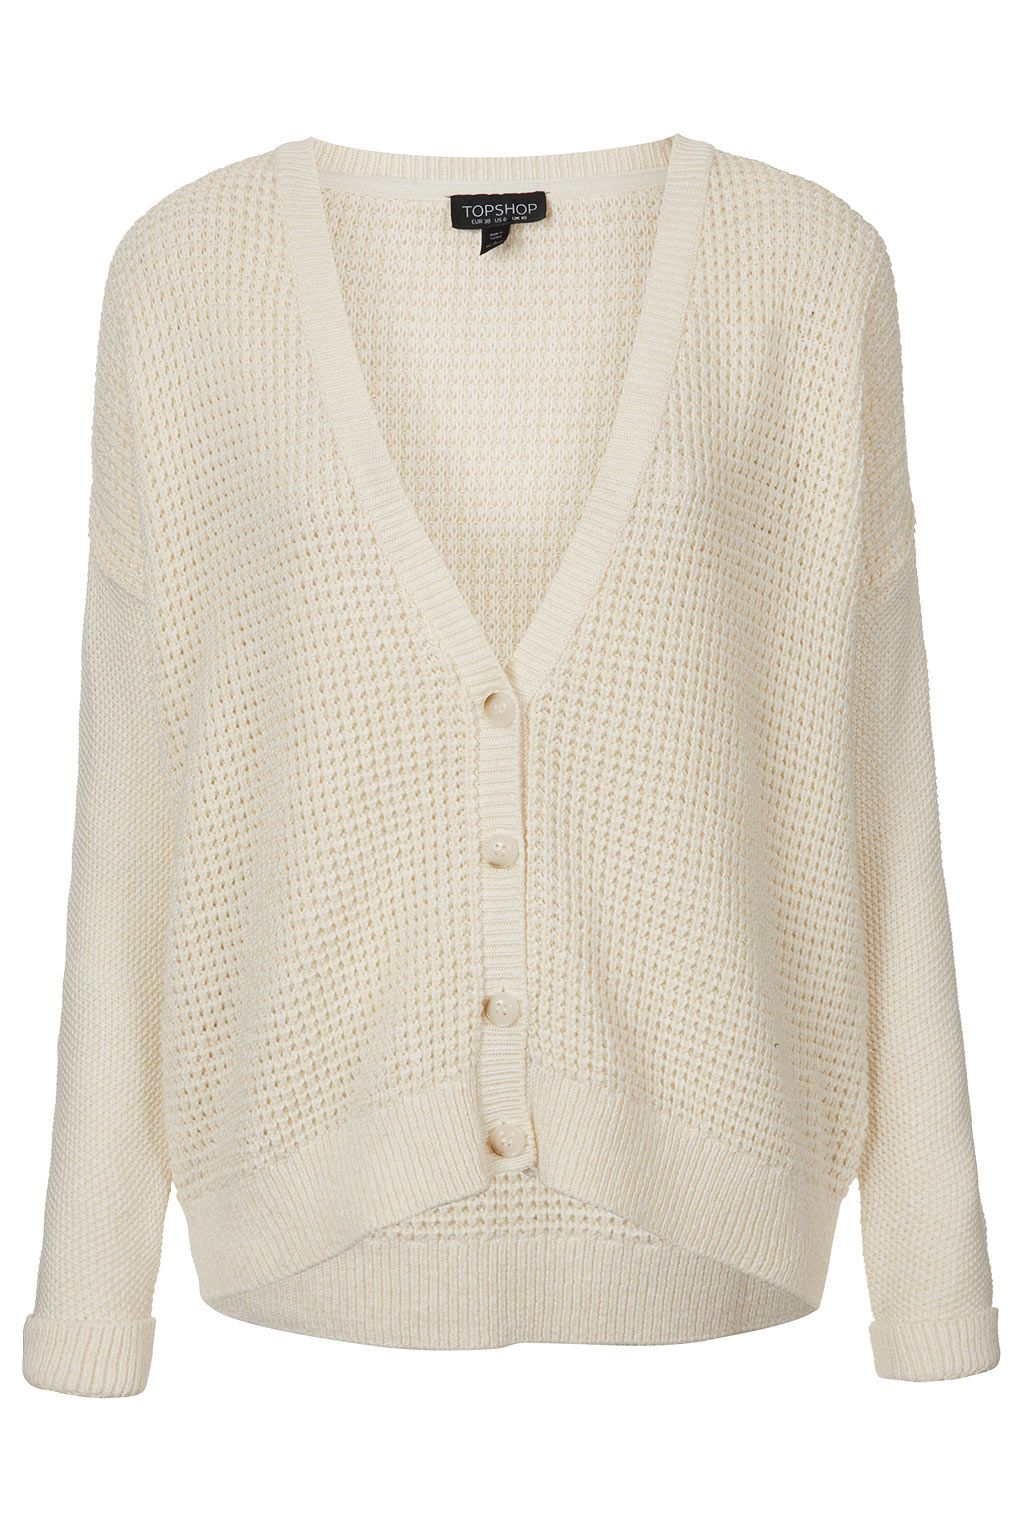 The perfect white cardigan for breezy summer nights [Knitted Short Grunge Cardi @ Topshop $72]